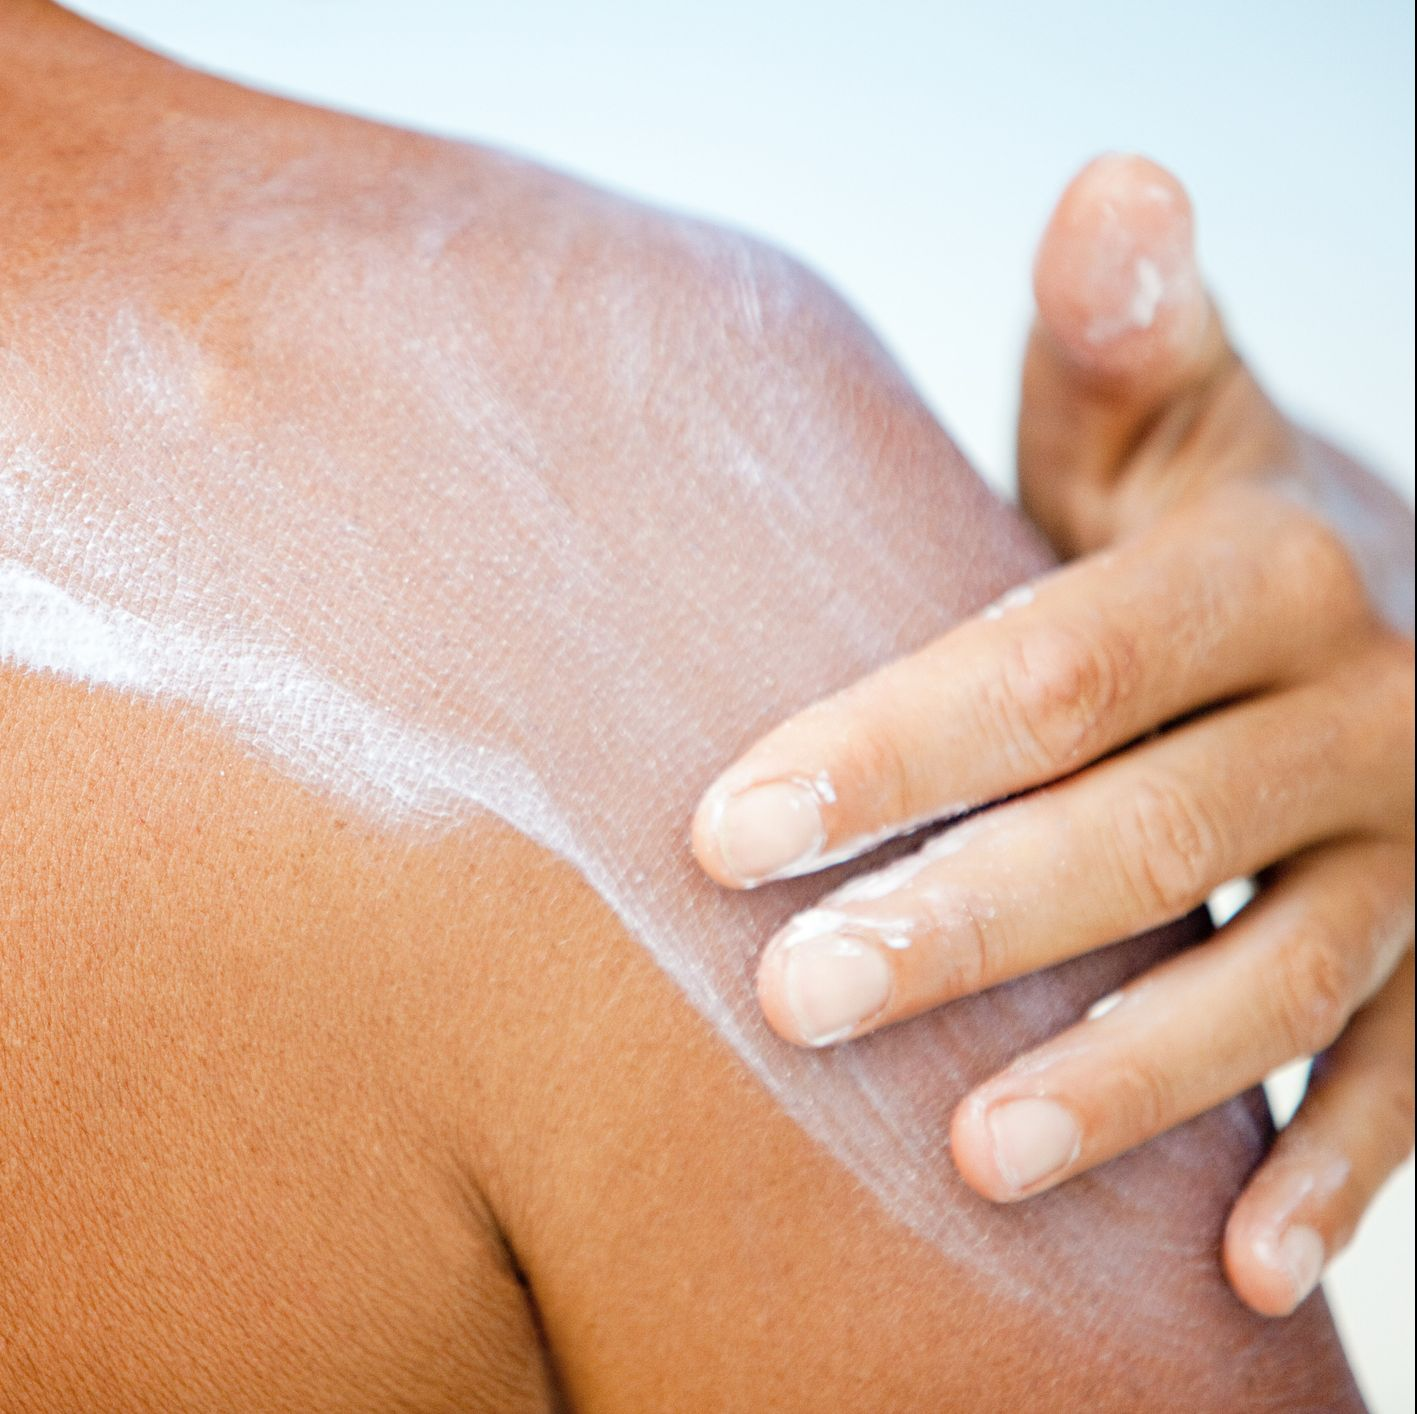 Does Sunscreen Block Vitamin D From the Sun?